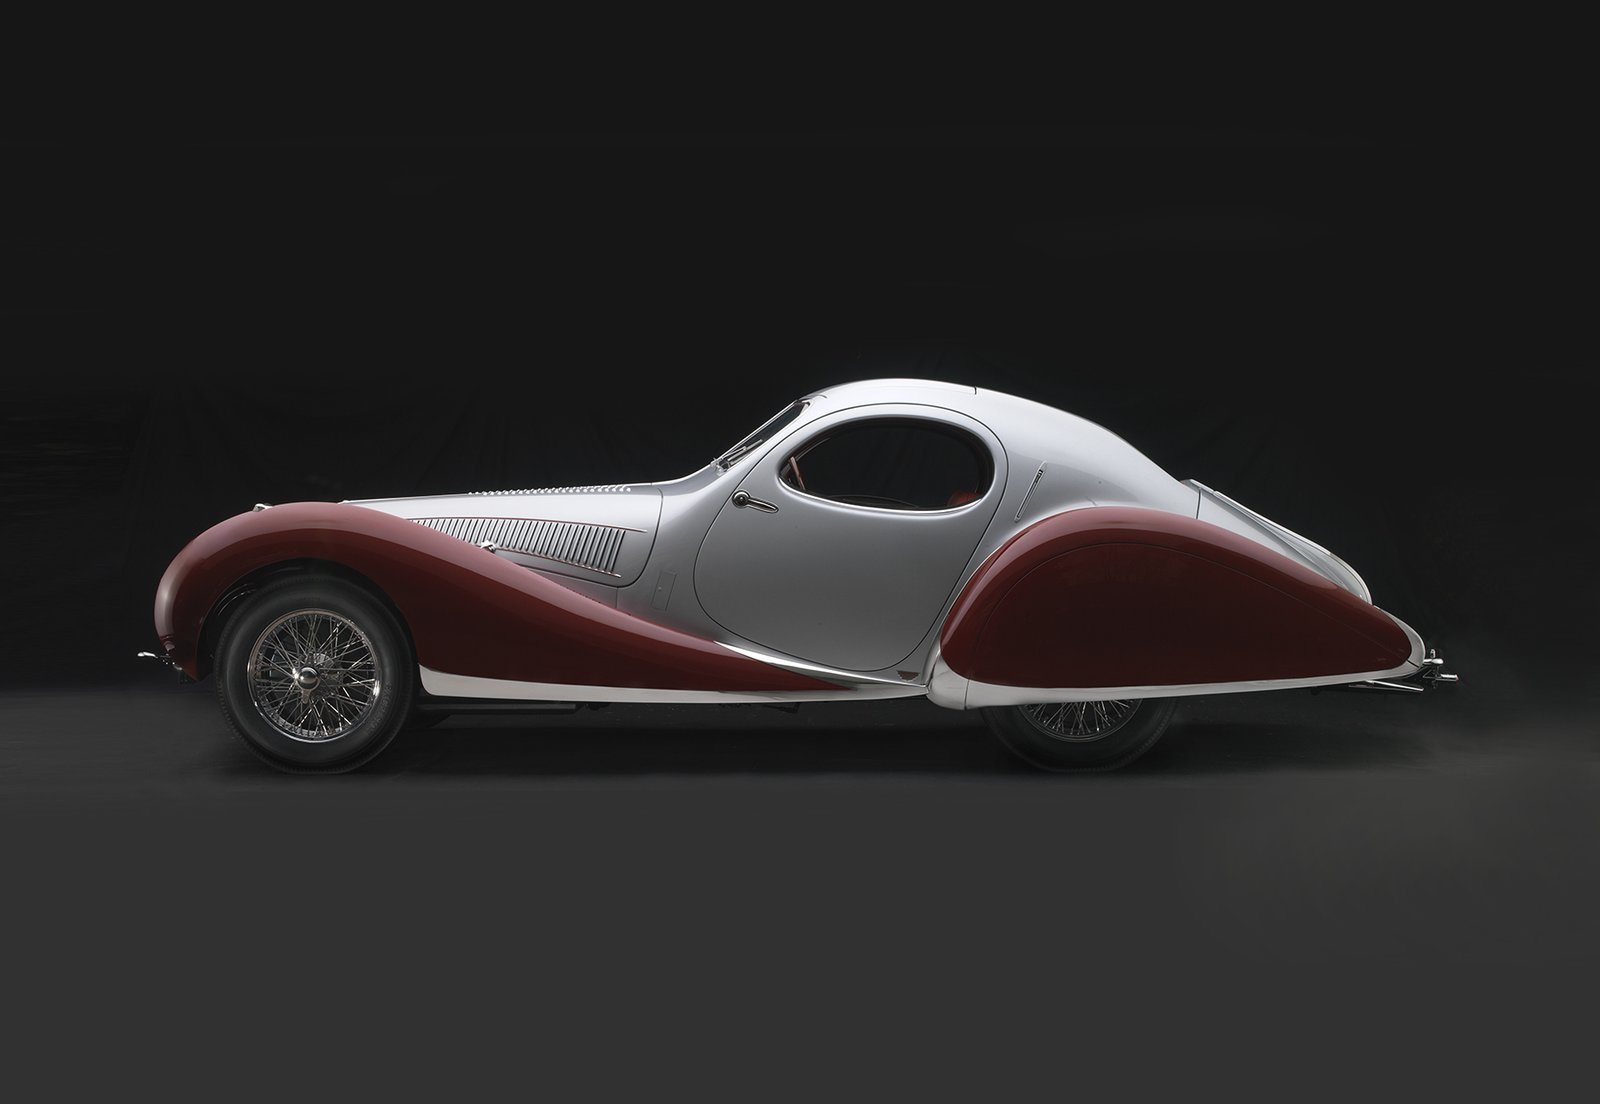 1938 Talbot-Lago T-150C-SS Teardrop, Collection of J. W. Marriott, Jr.;  Photo 8 of 15 in Examining the Architecture of the Art Deco Automobile